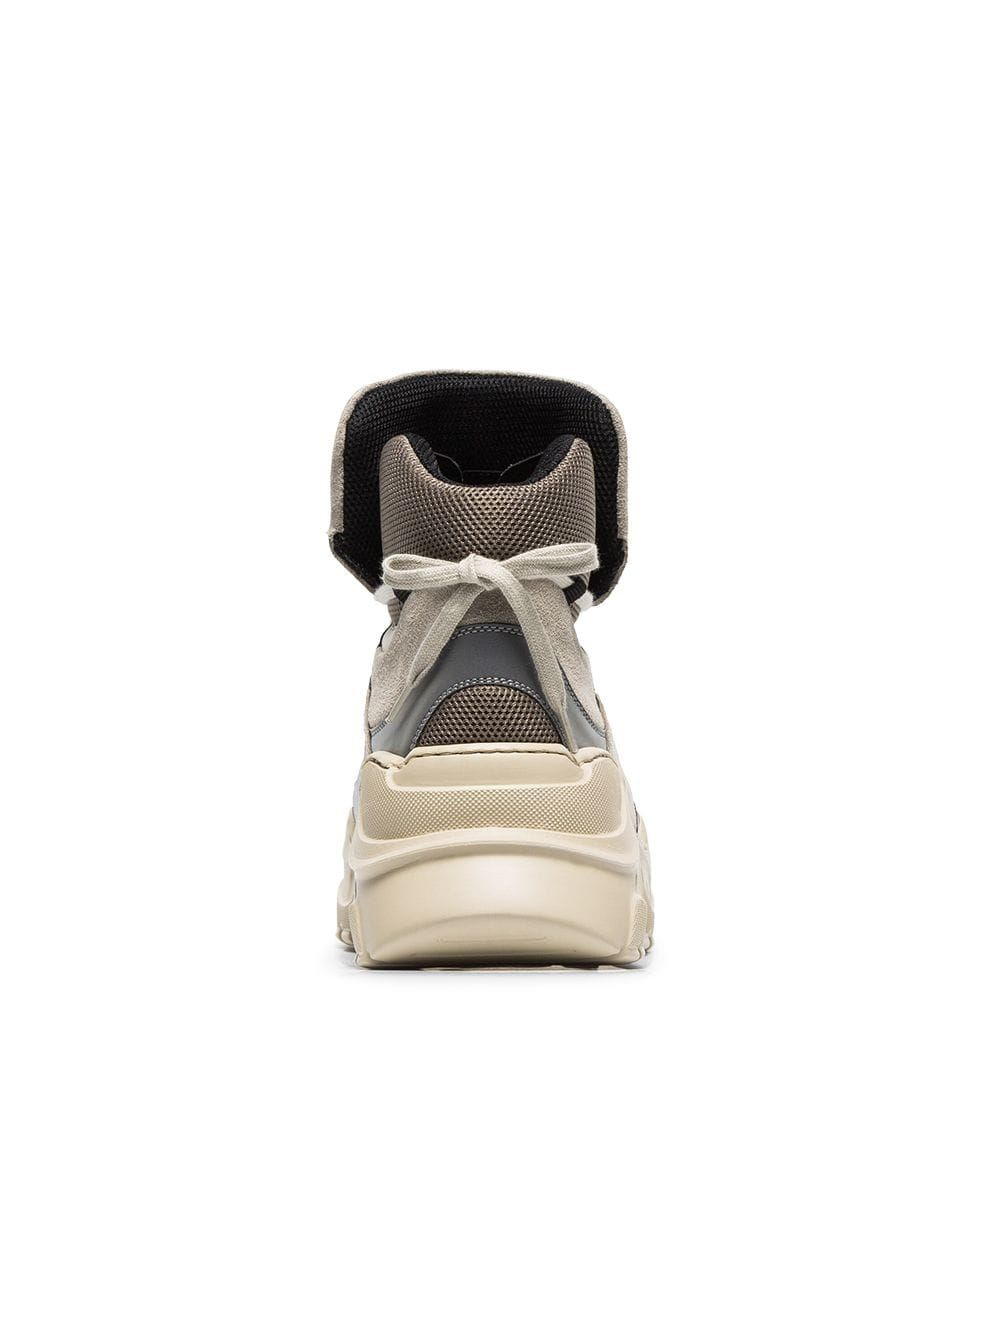 Pin by matt willis on Trainers | Sneakers, Shoes, Tap shoes